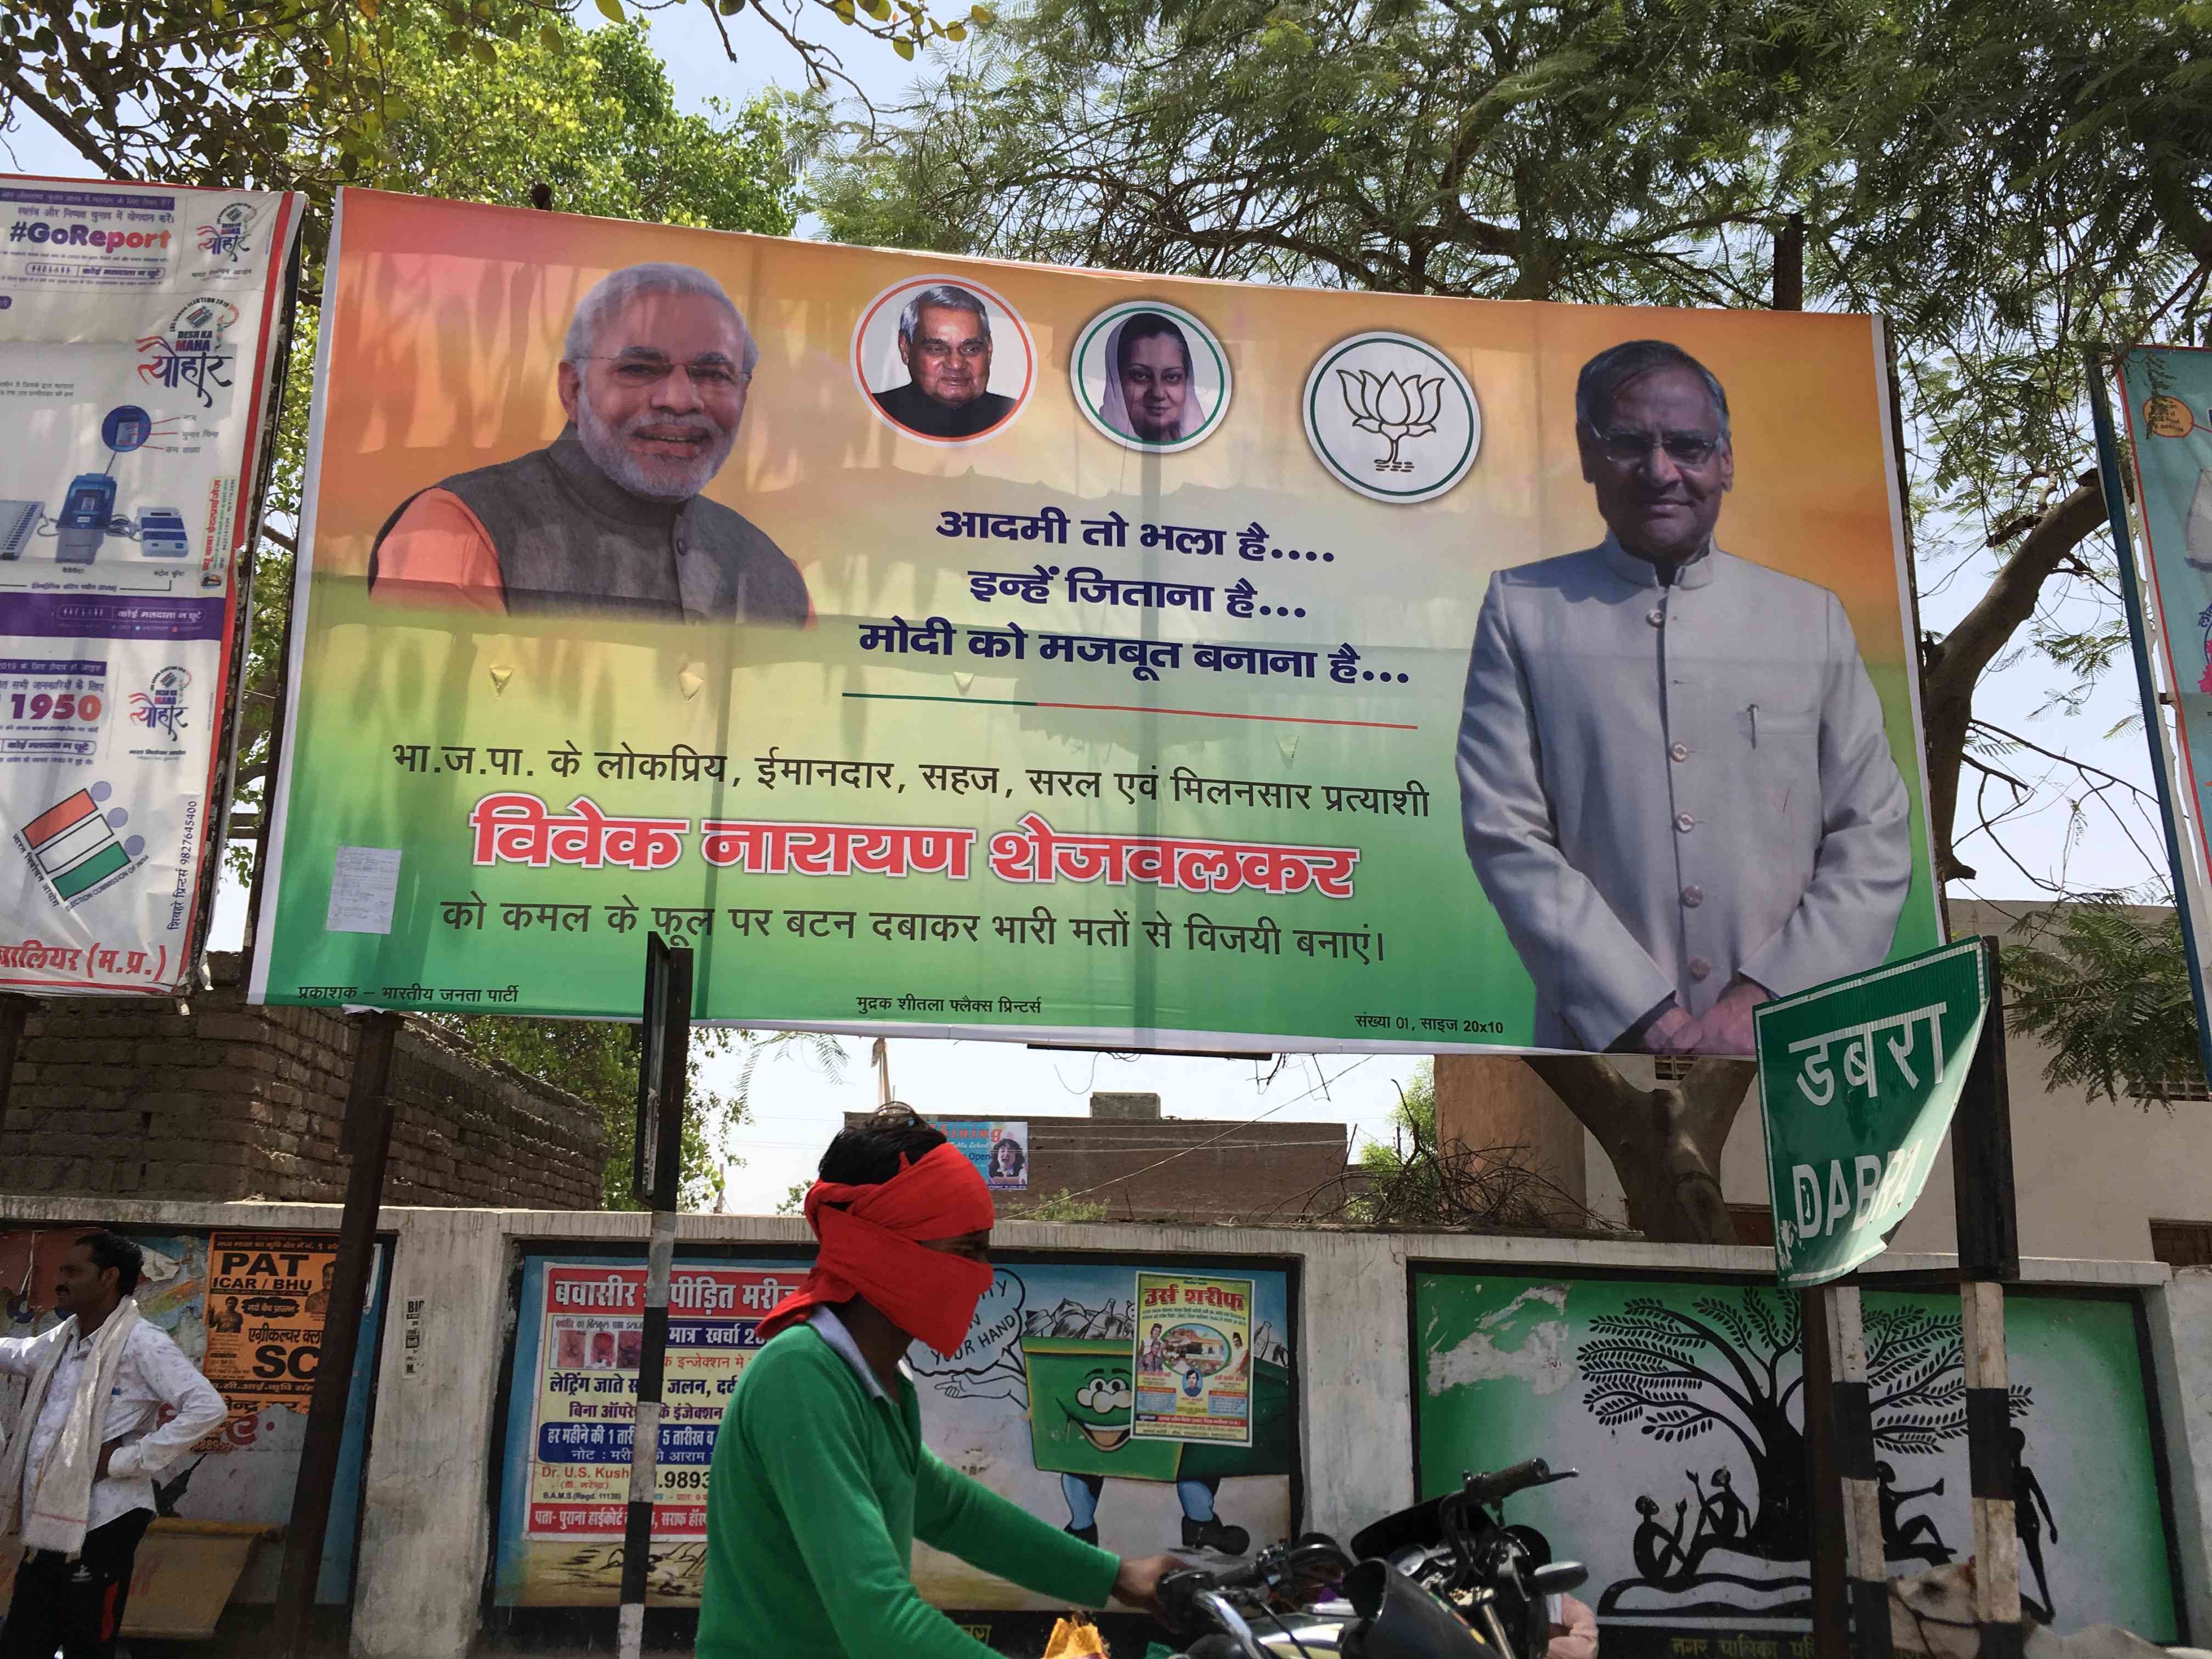 A BJP campaign hoarding in Darba town, Gwalior. The party is seeking votes in Prime Minister Narendra Modi's name. Photo credit: Akash Bisht